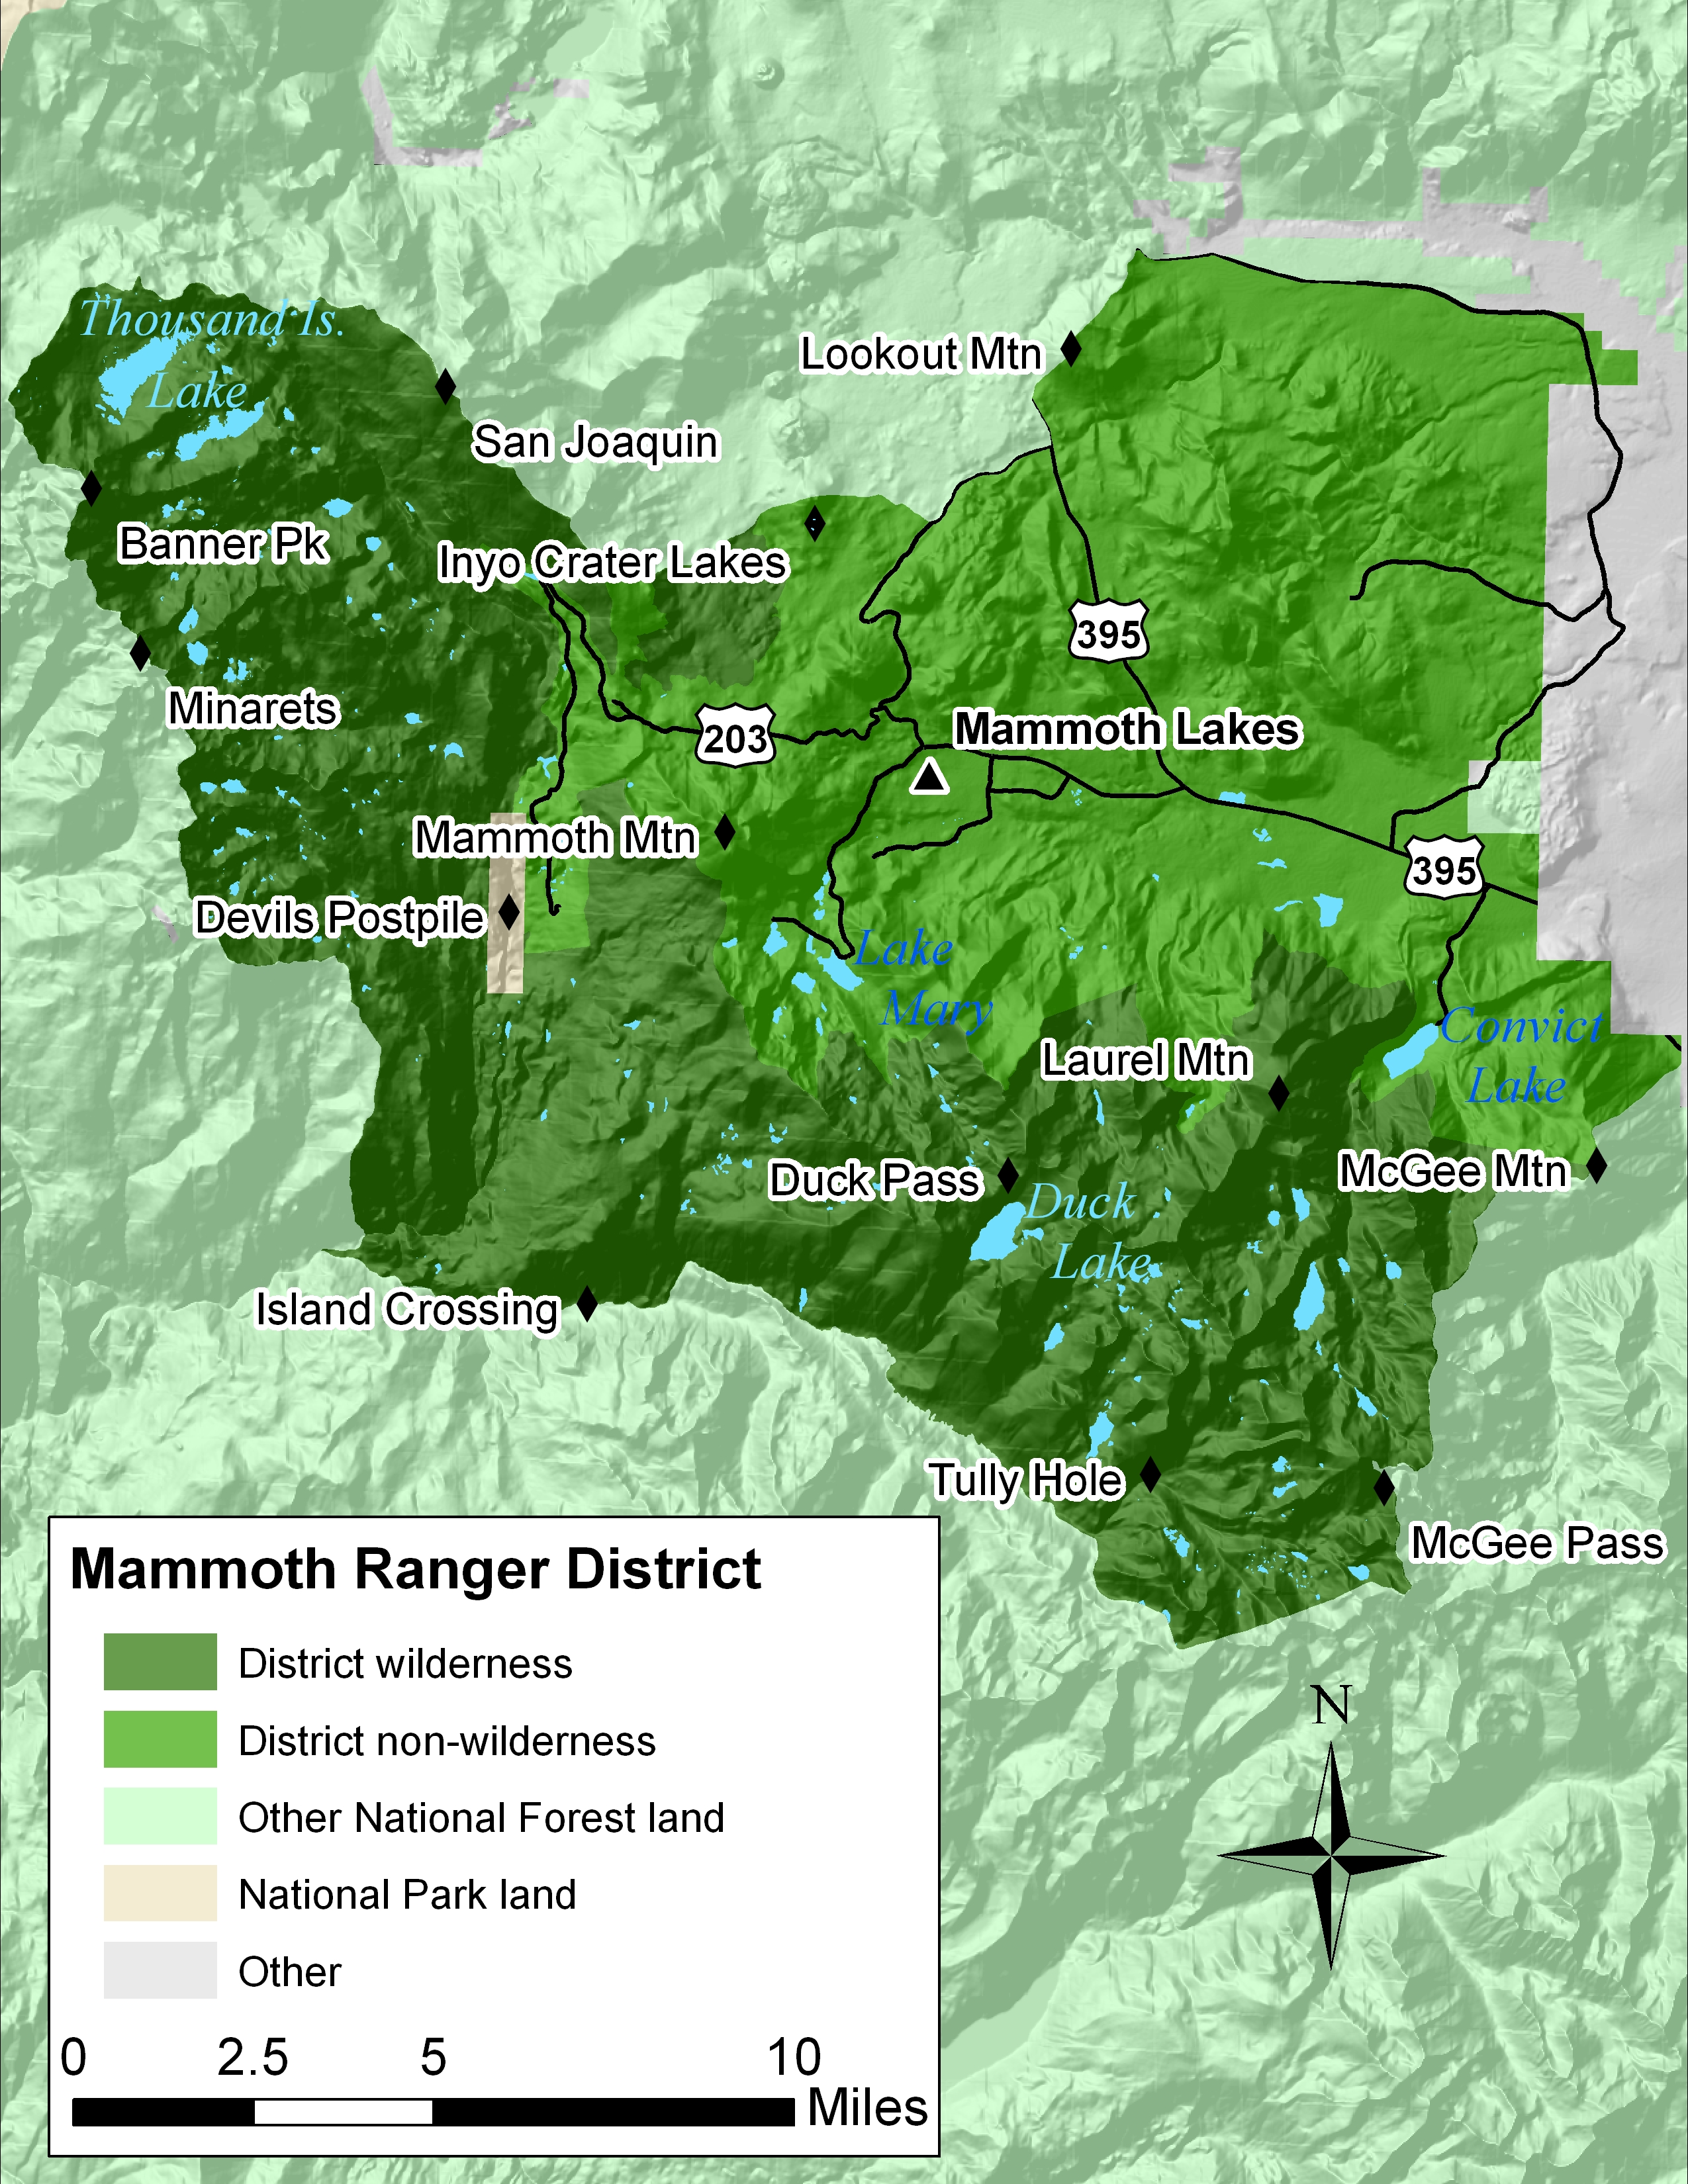 Mammoth Lakes Ranger District